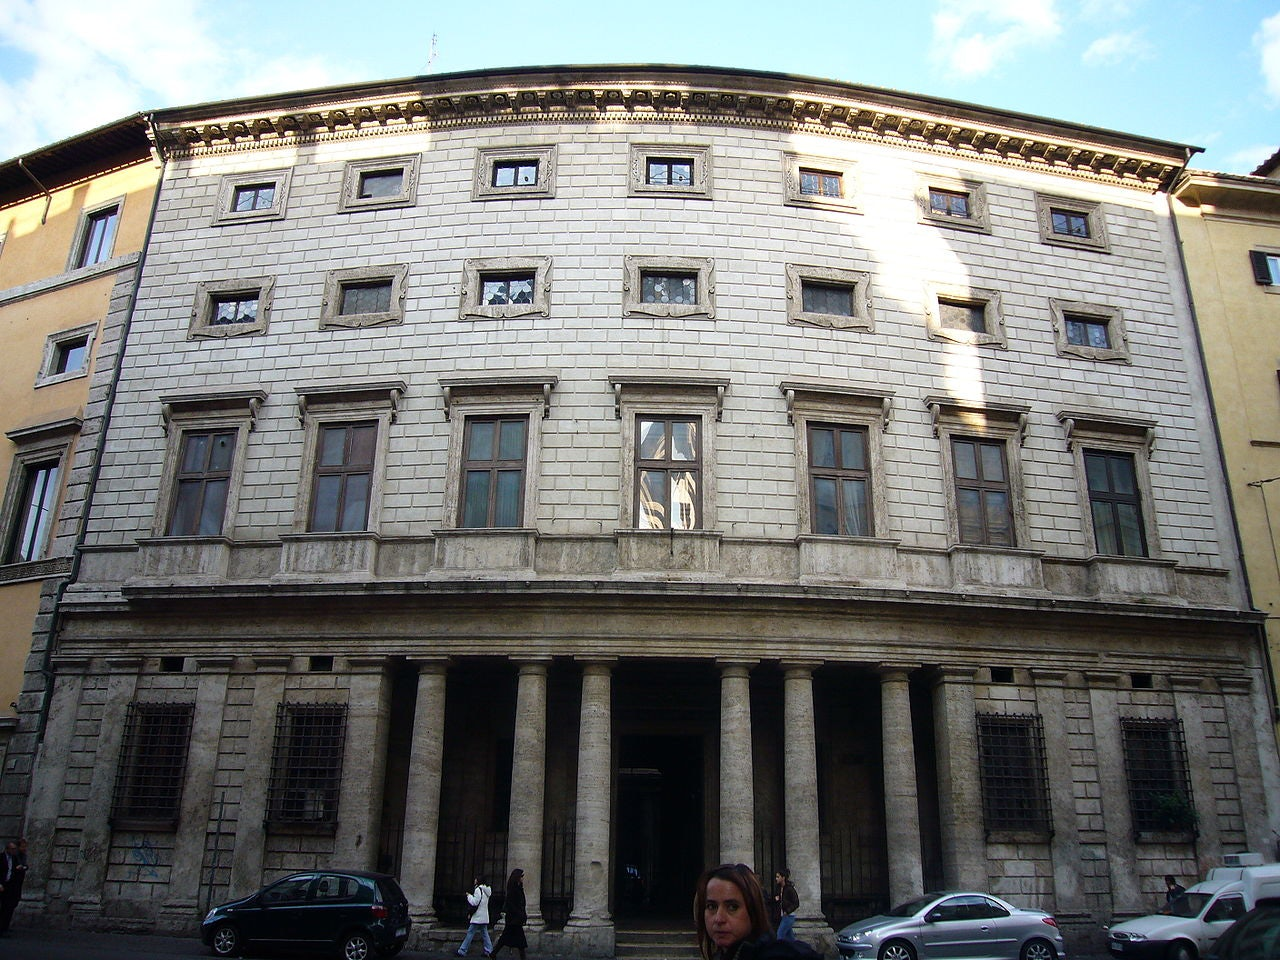 exterior of Palazzo Massimo Alle Colonne